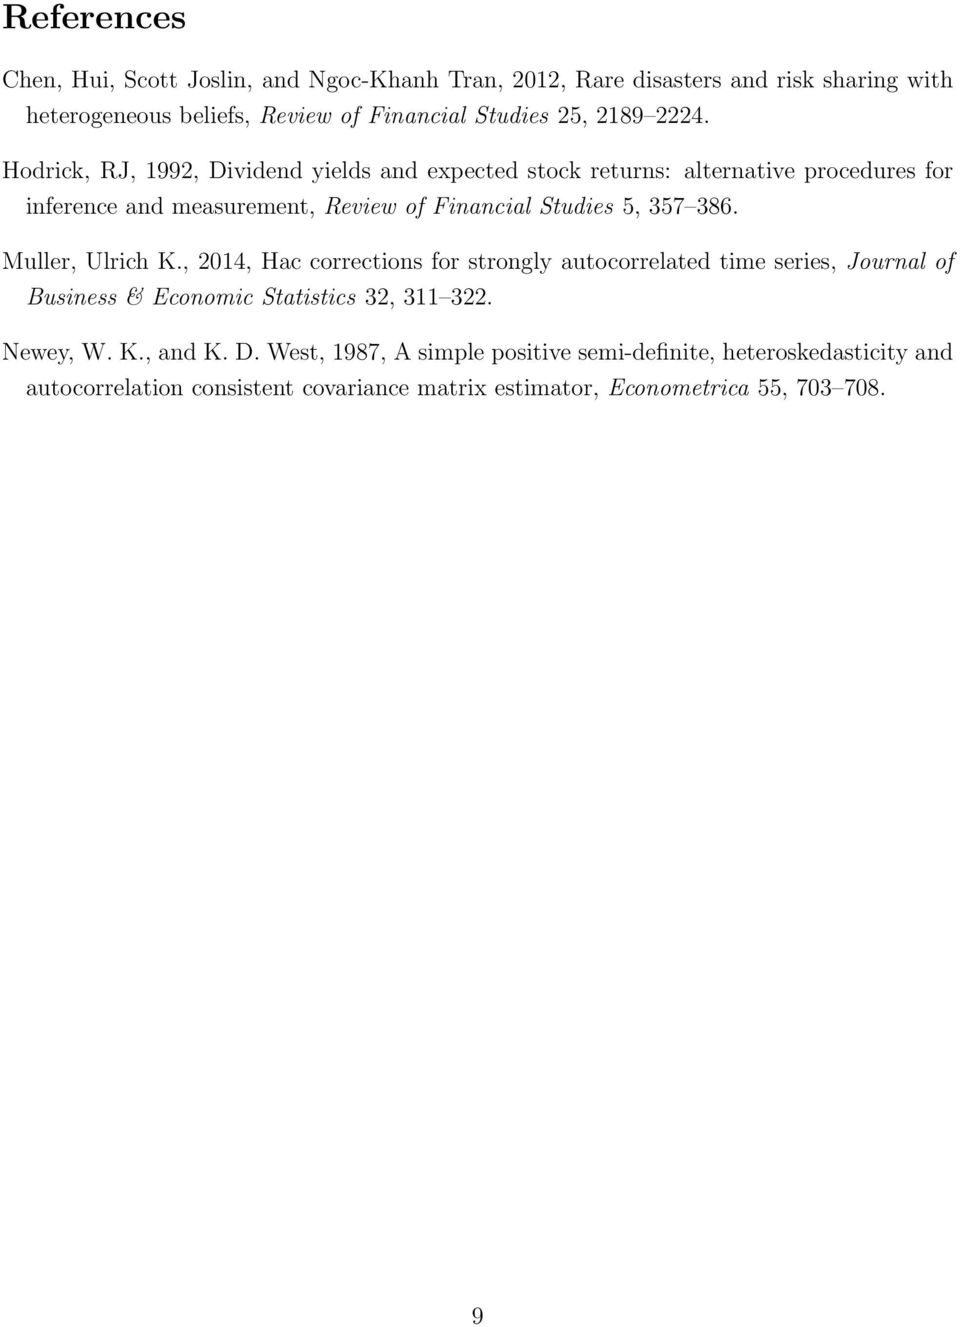 Hodrick, RJ, 1992, Dividend yields and expected stock returns: alternative procedures for inference and measurement, Review of Financial Studies 5, 357 386.